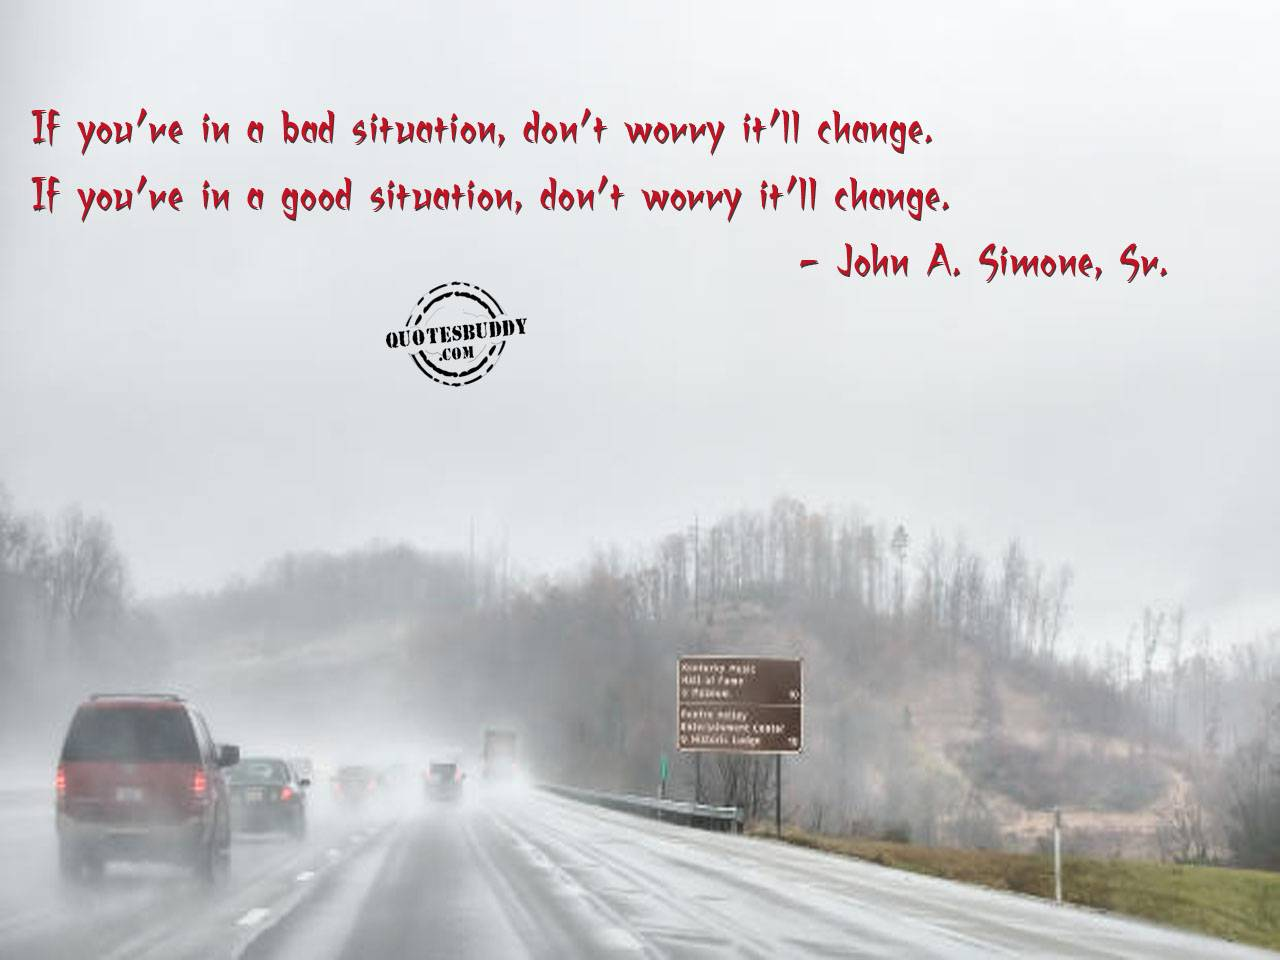 If You're In A Bad Situation, Don't Worry It'll Change. If You're In A Good Situation, Don't Worry It'll Change. - John A. Simone Sr.